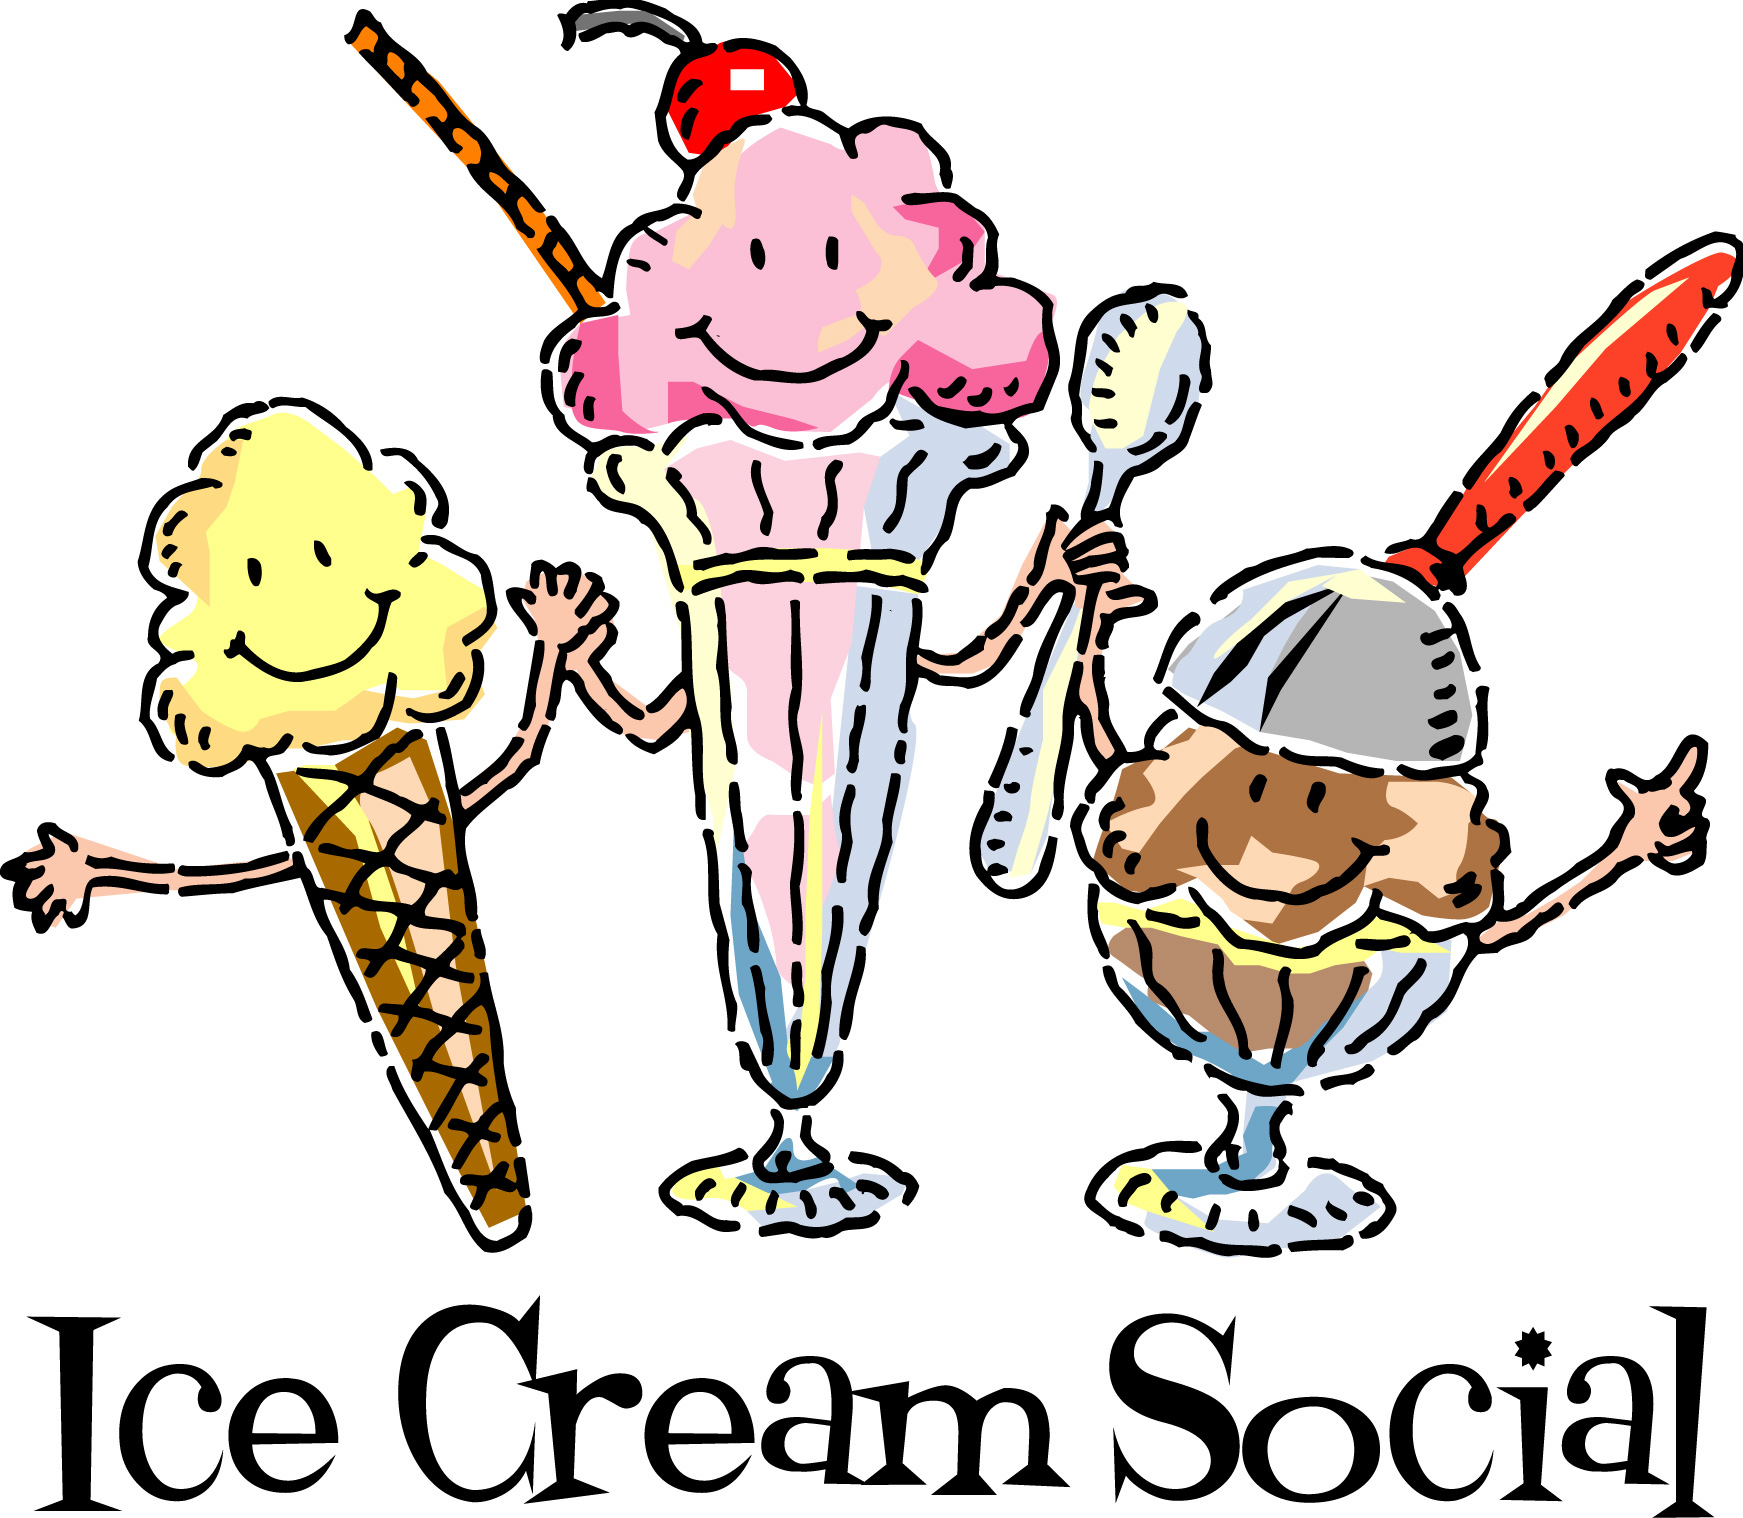 Ice Cream Social Clip Art | Clipart Panda - Free Clipart Images